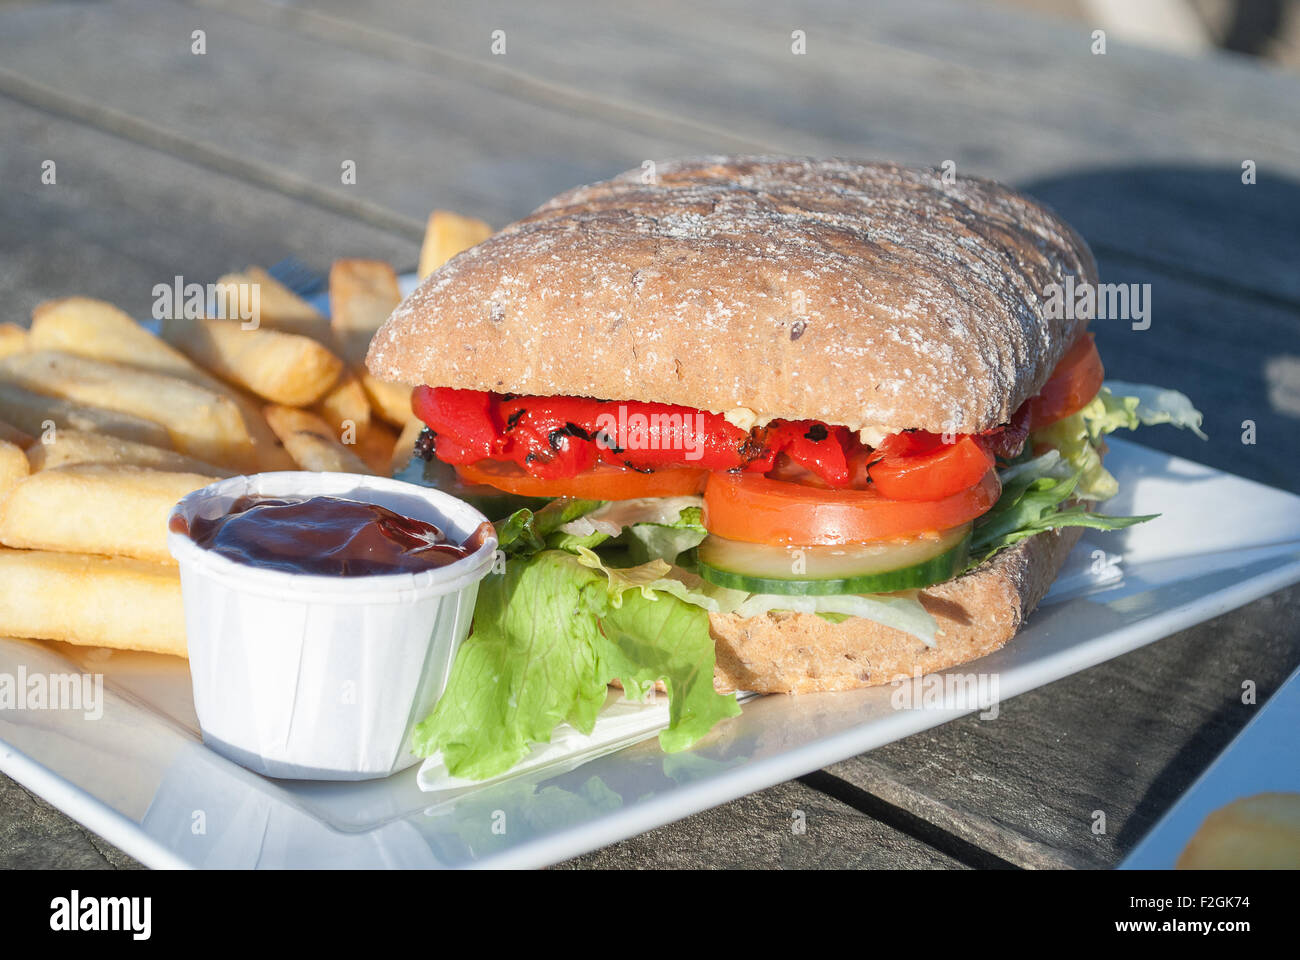 Vegan Roasted Pepper and Mixed Salad Sandwich, with chips and tomato sauce. - Stock Image